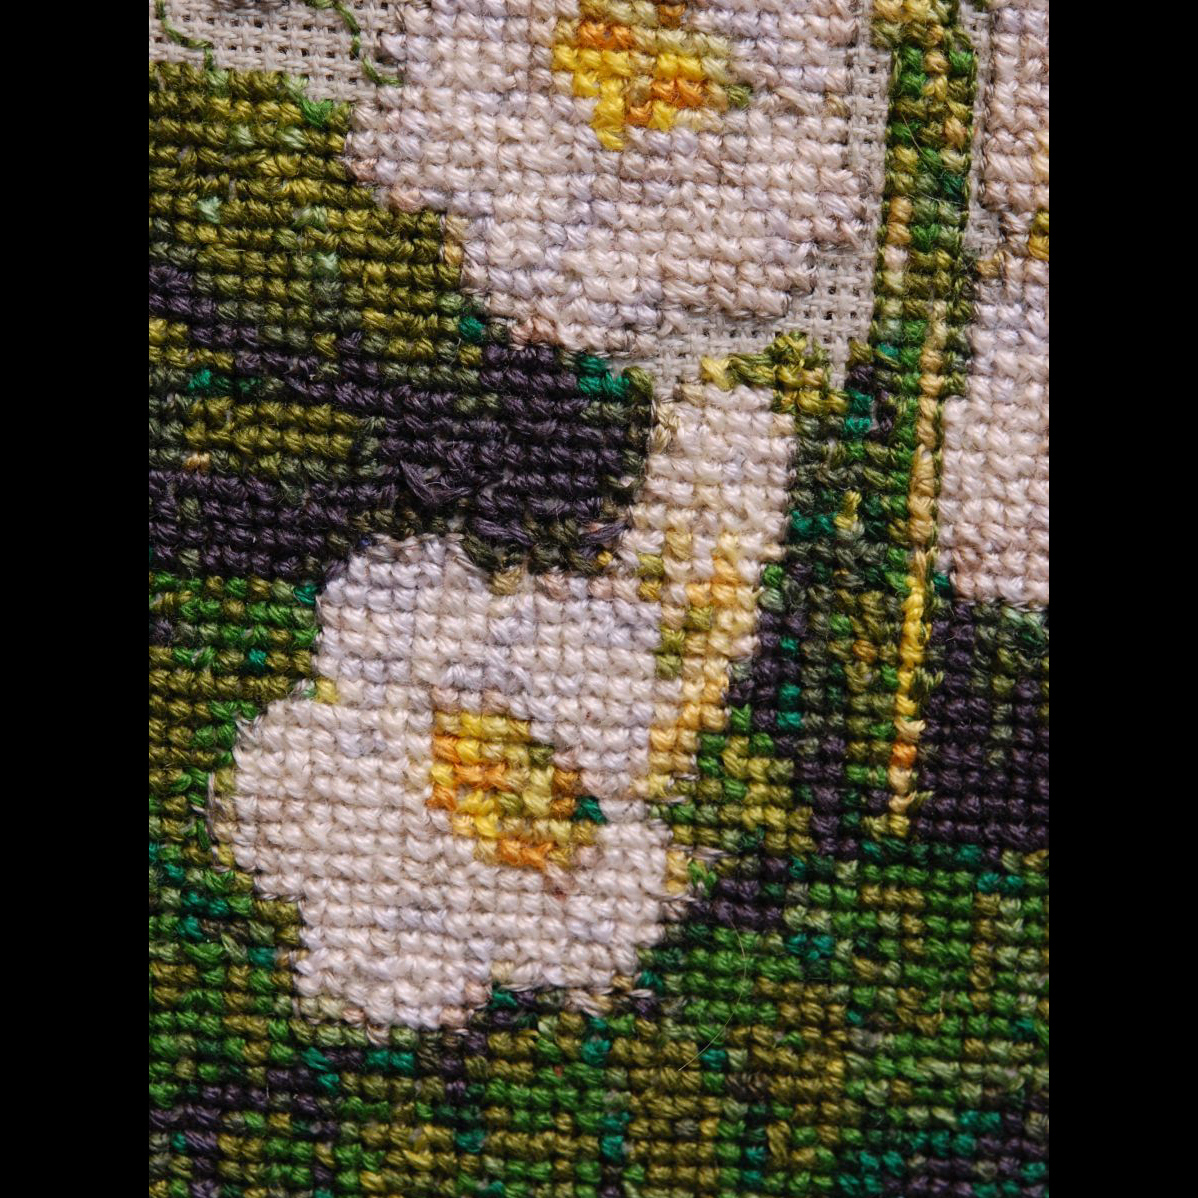 2017 Convention<br>Arts and Crafts Representing Gesneriads<br>Class 75 – Needlework or textile <br>RUNNER-UP TO BEST IN ARTS